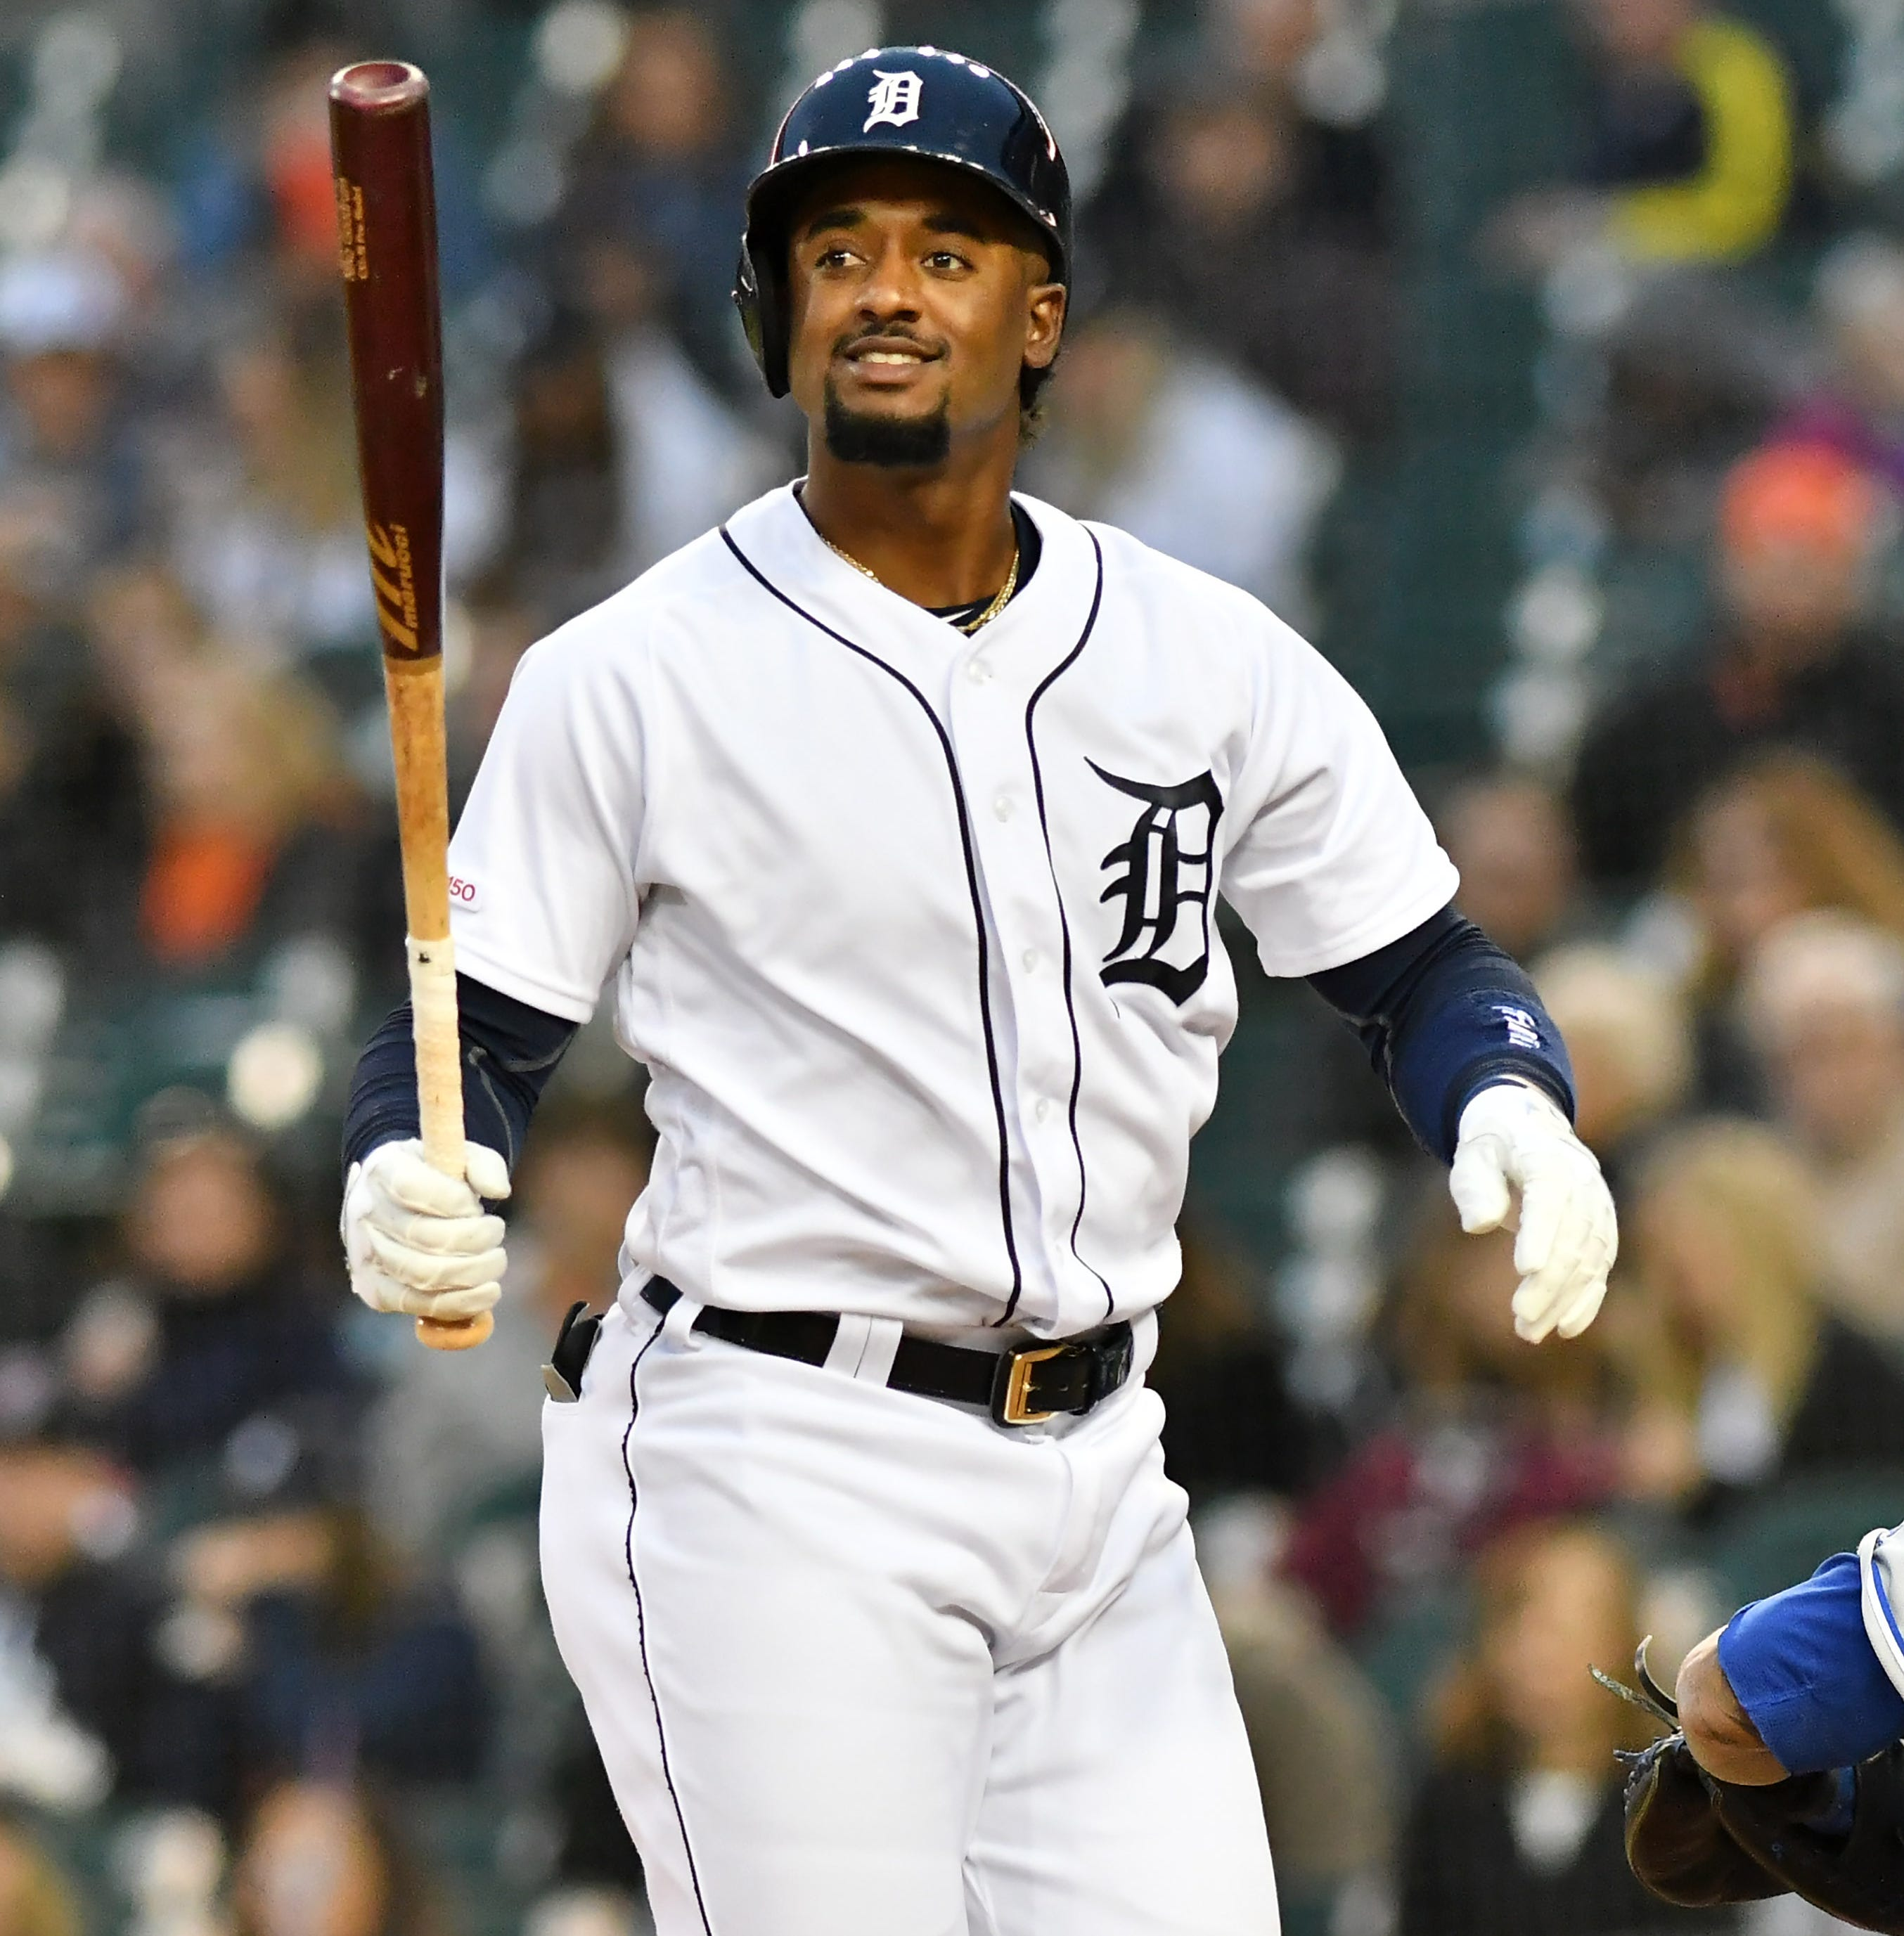 'Consistent' Niko Goodrum digging in at cleanup spot for Tigers